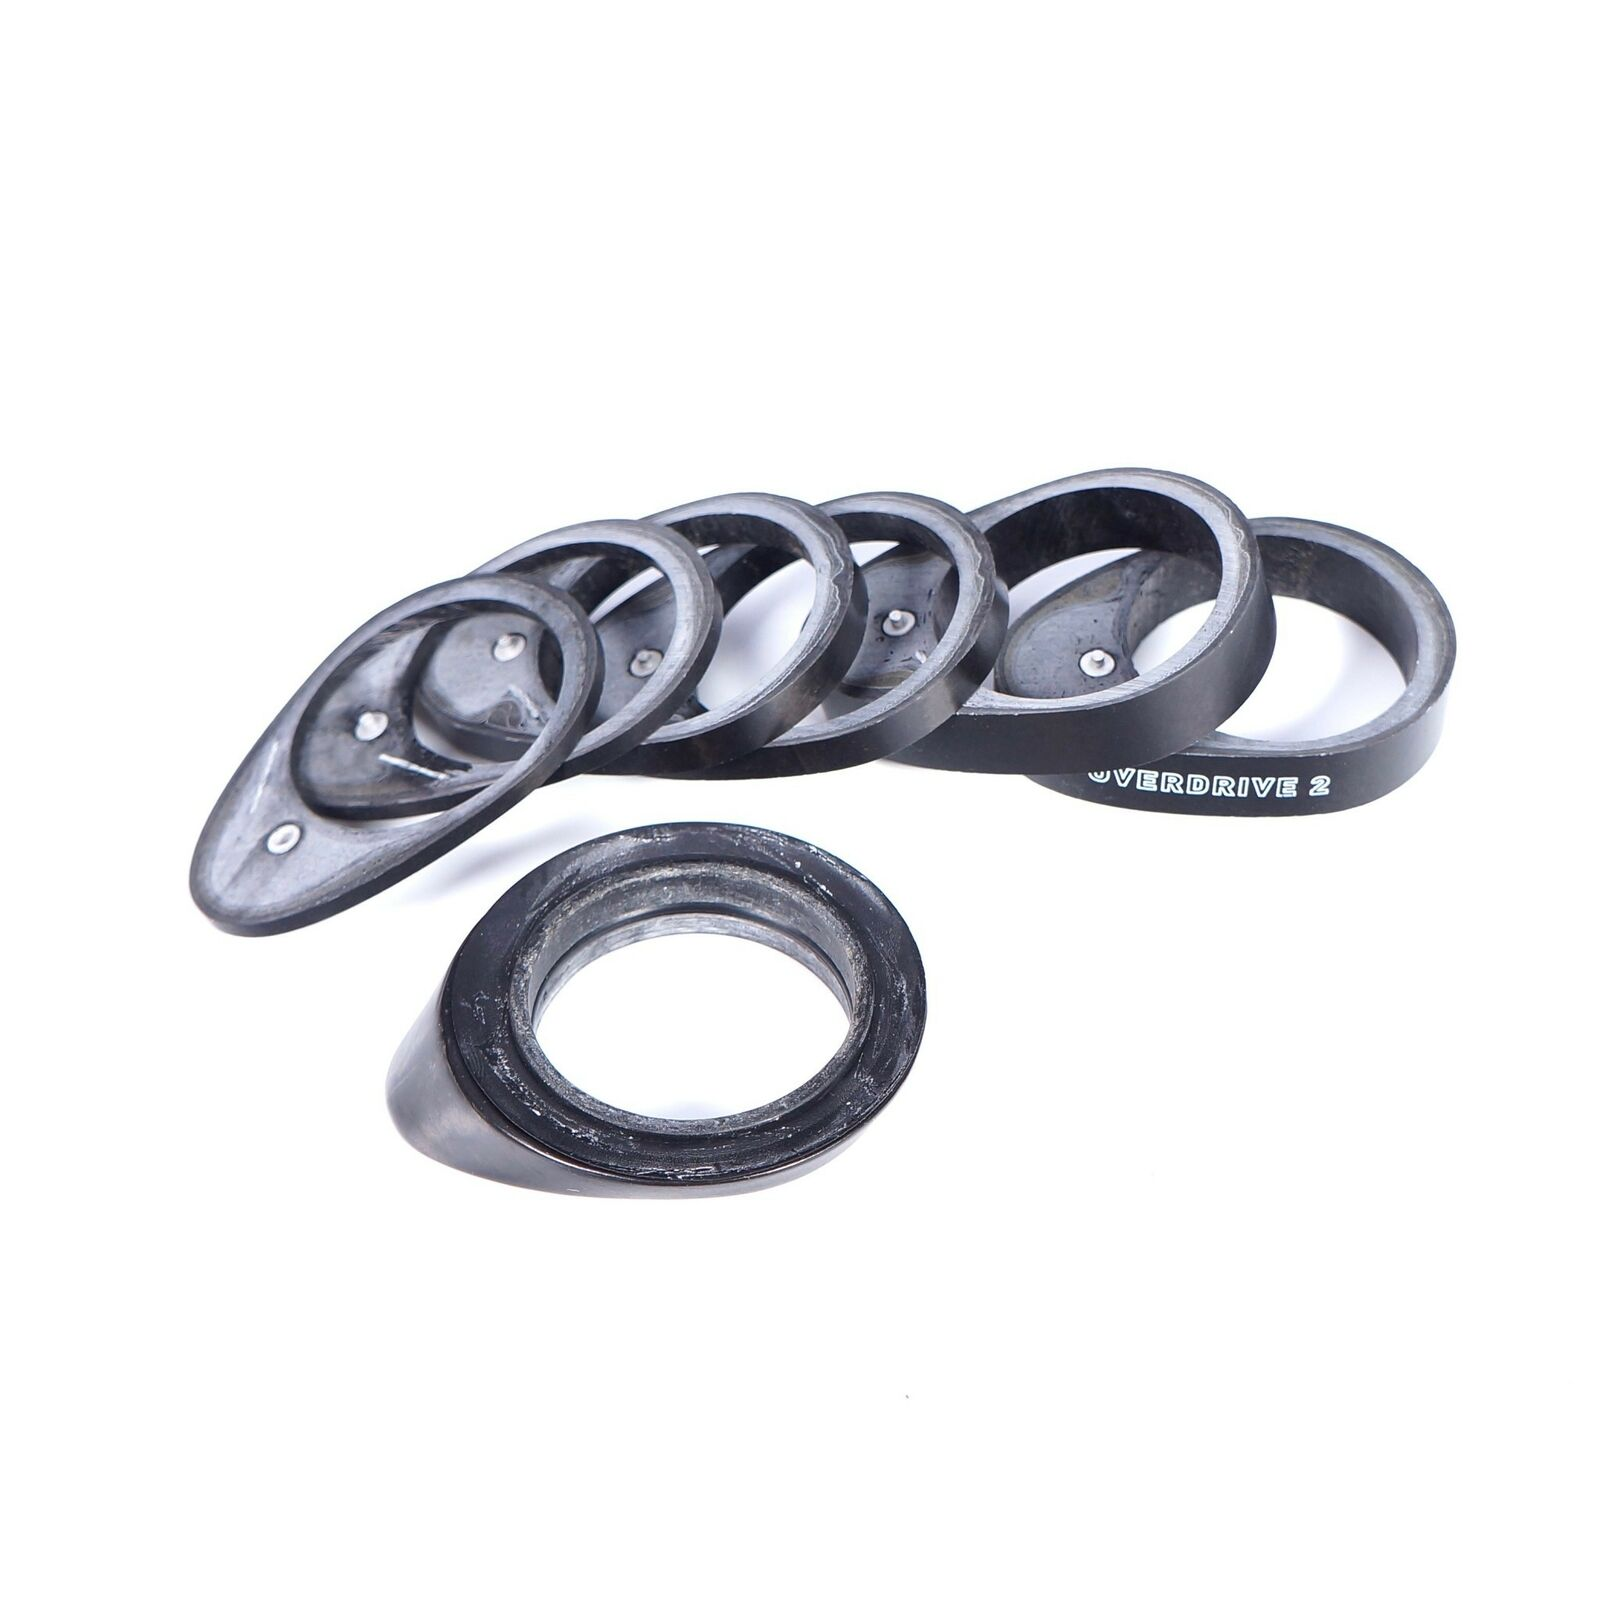 10mmx2 GIANT 1-1//4 inch Overdrive2 OD2 Headset Carbon spacer 2.5mmx1 5mmx2